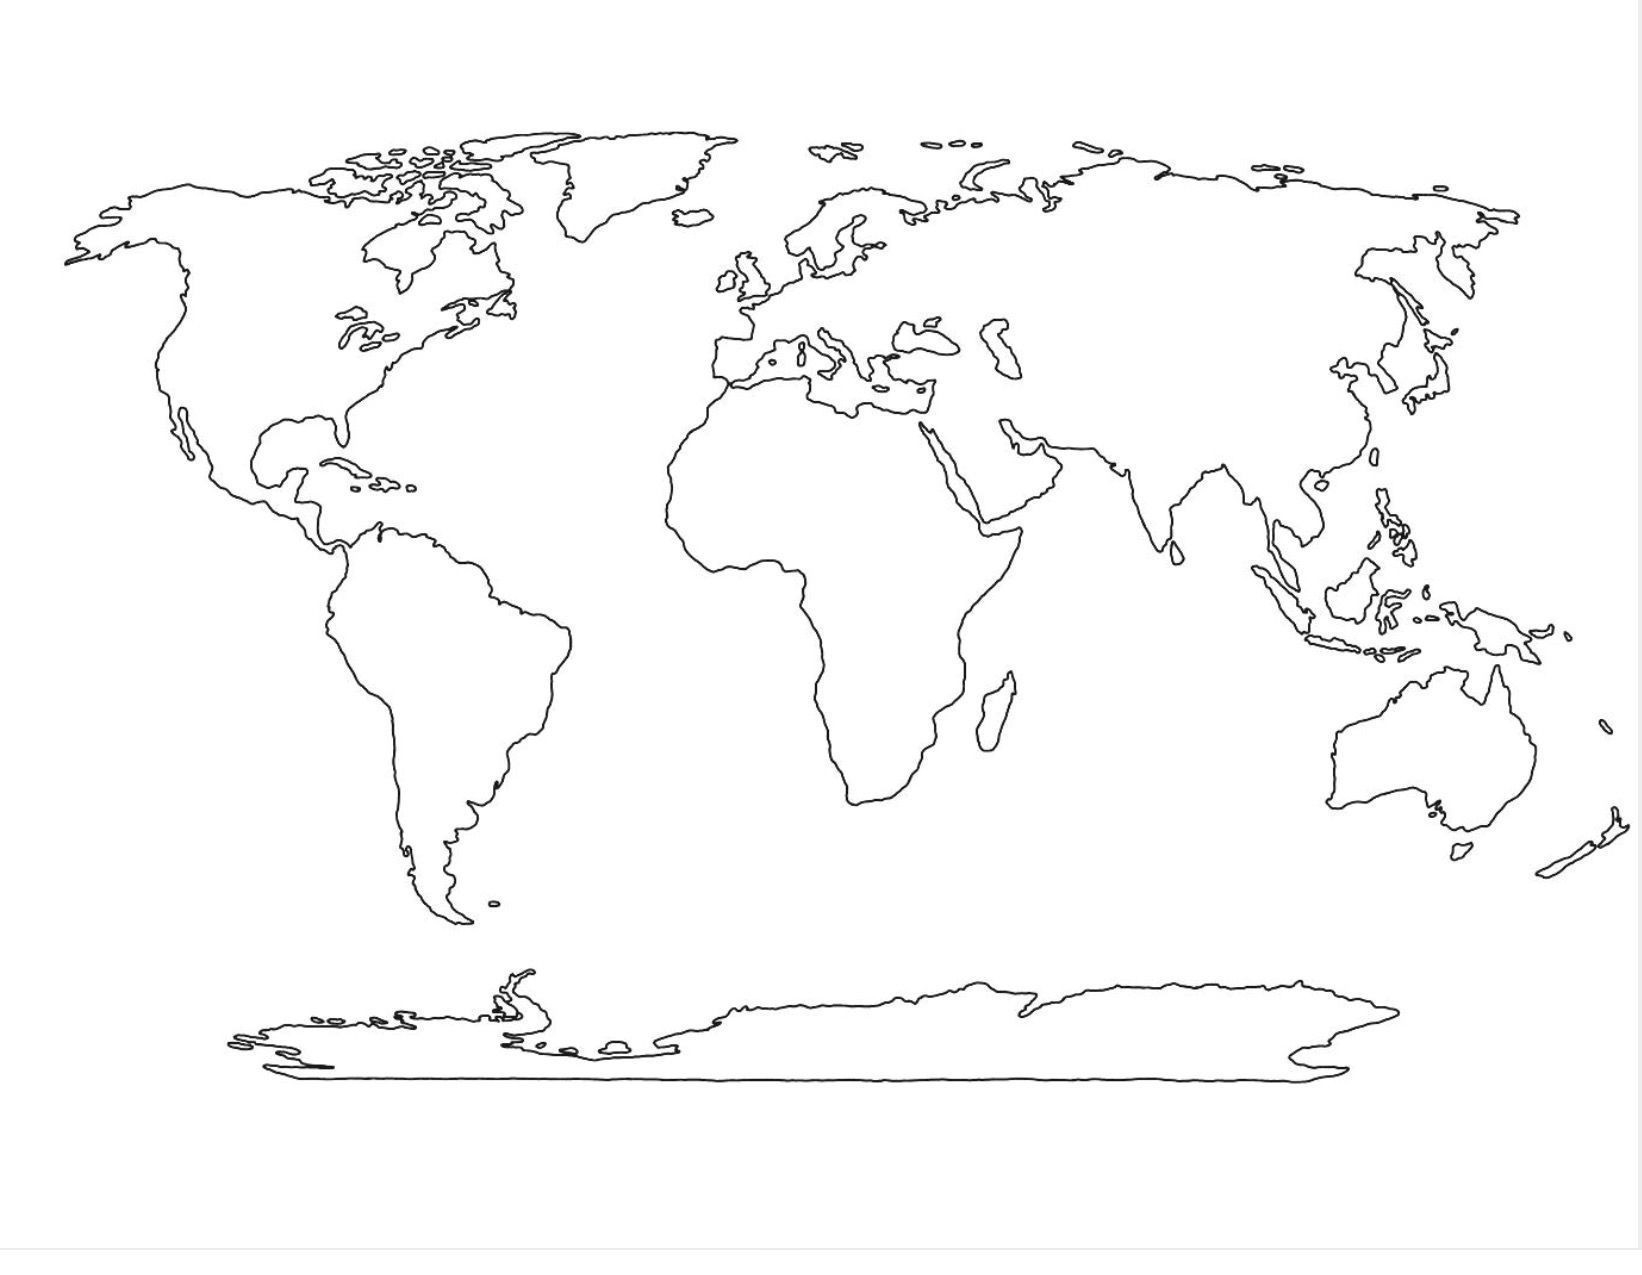 Blank World Map Pdf - Free Maps World Collection - Free Printable World Map Pdf